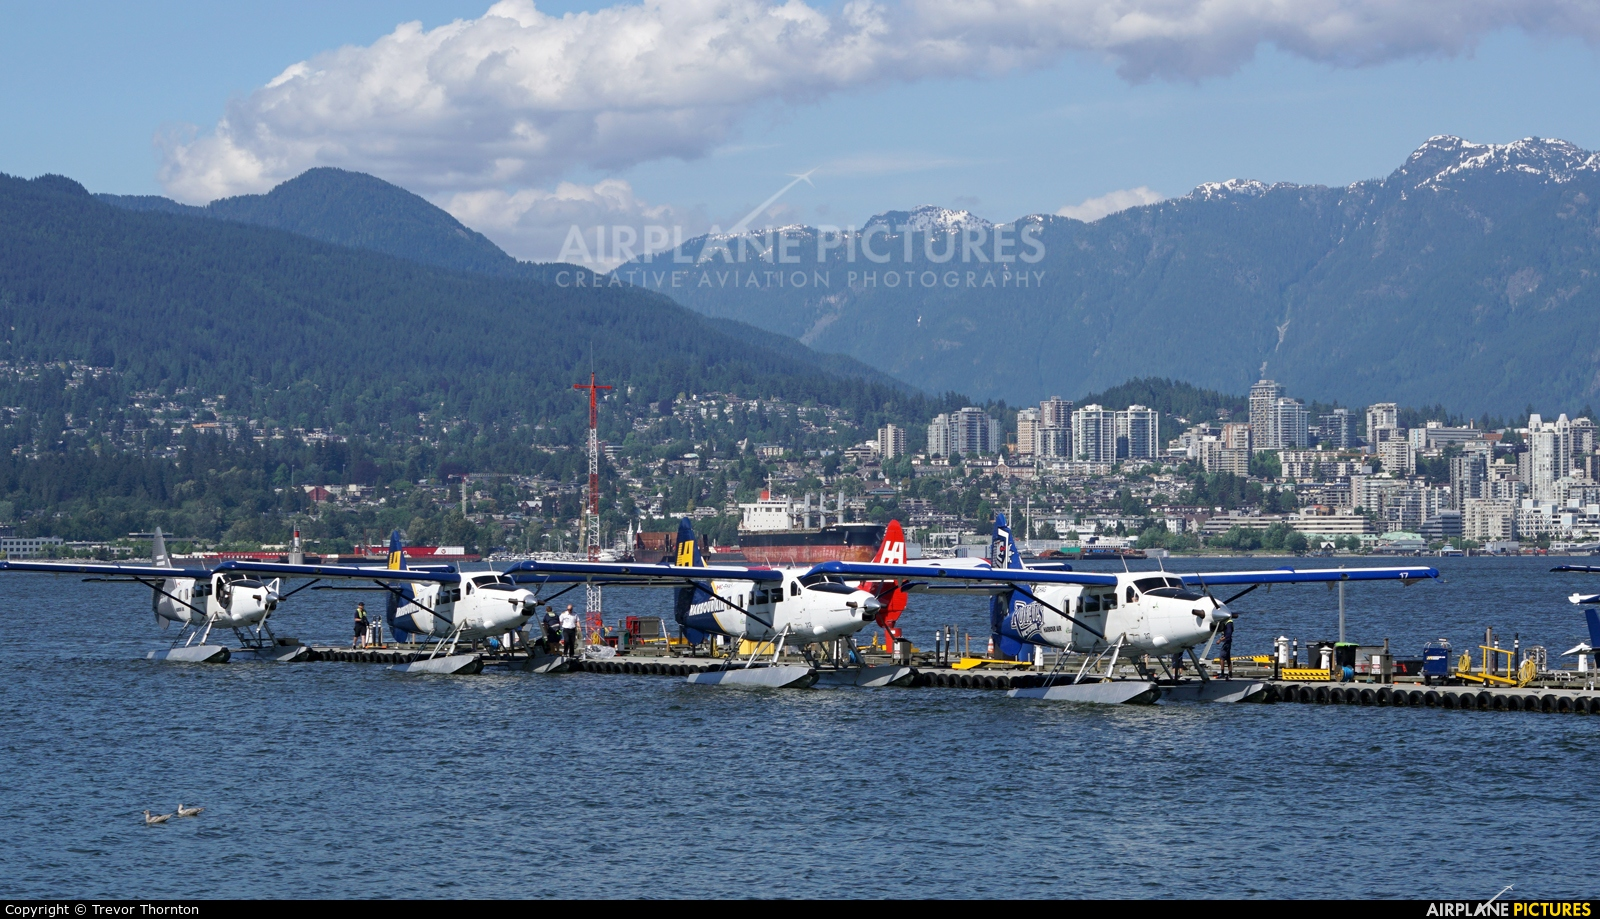 Harbour Air C-FHAS aircraft at Vancouver Coal Harbor, BC